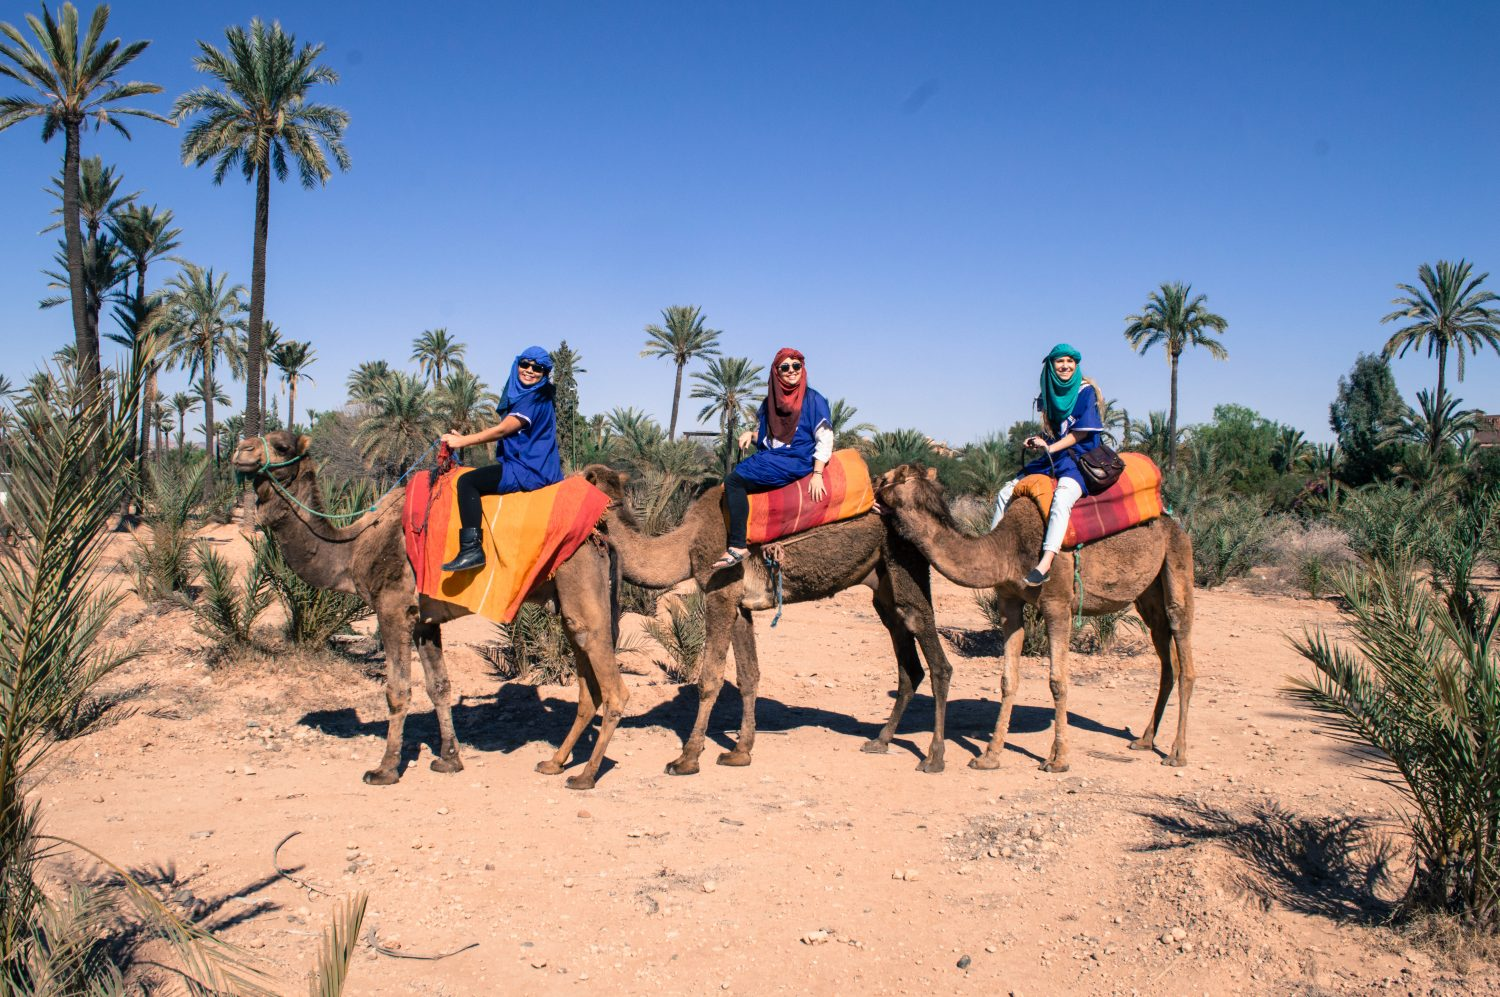 Camel riding in Morocco